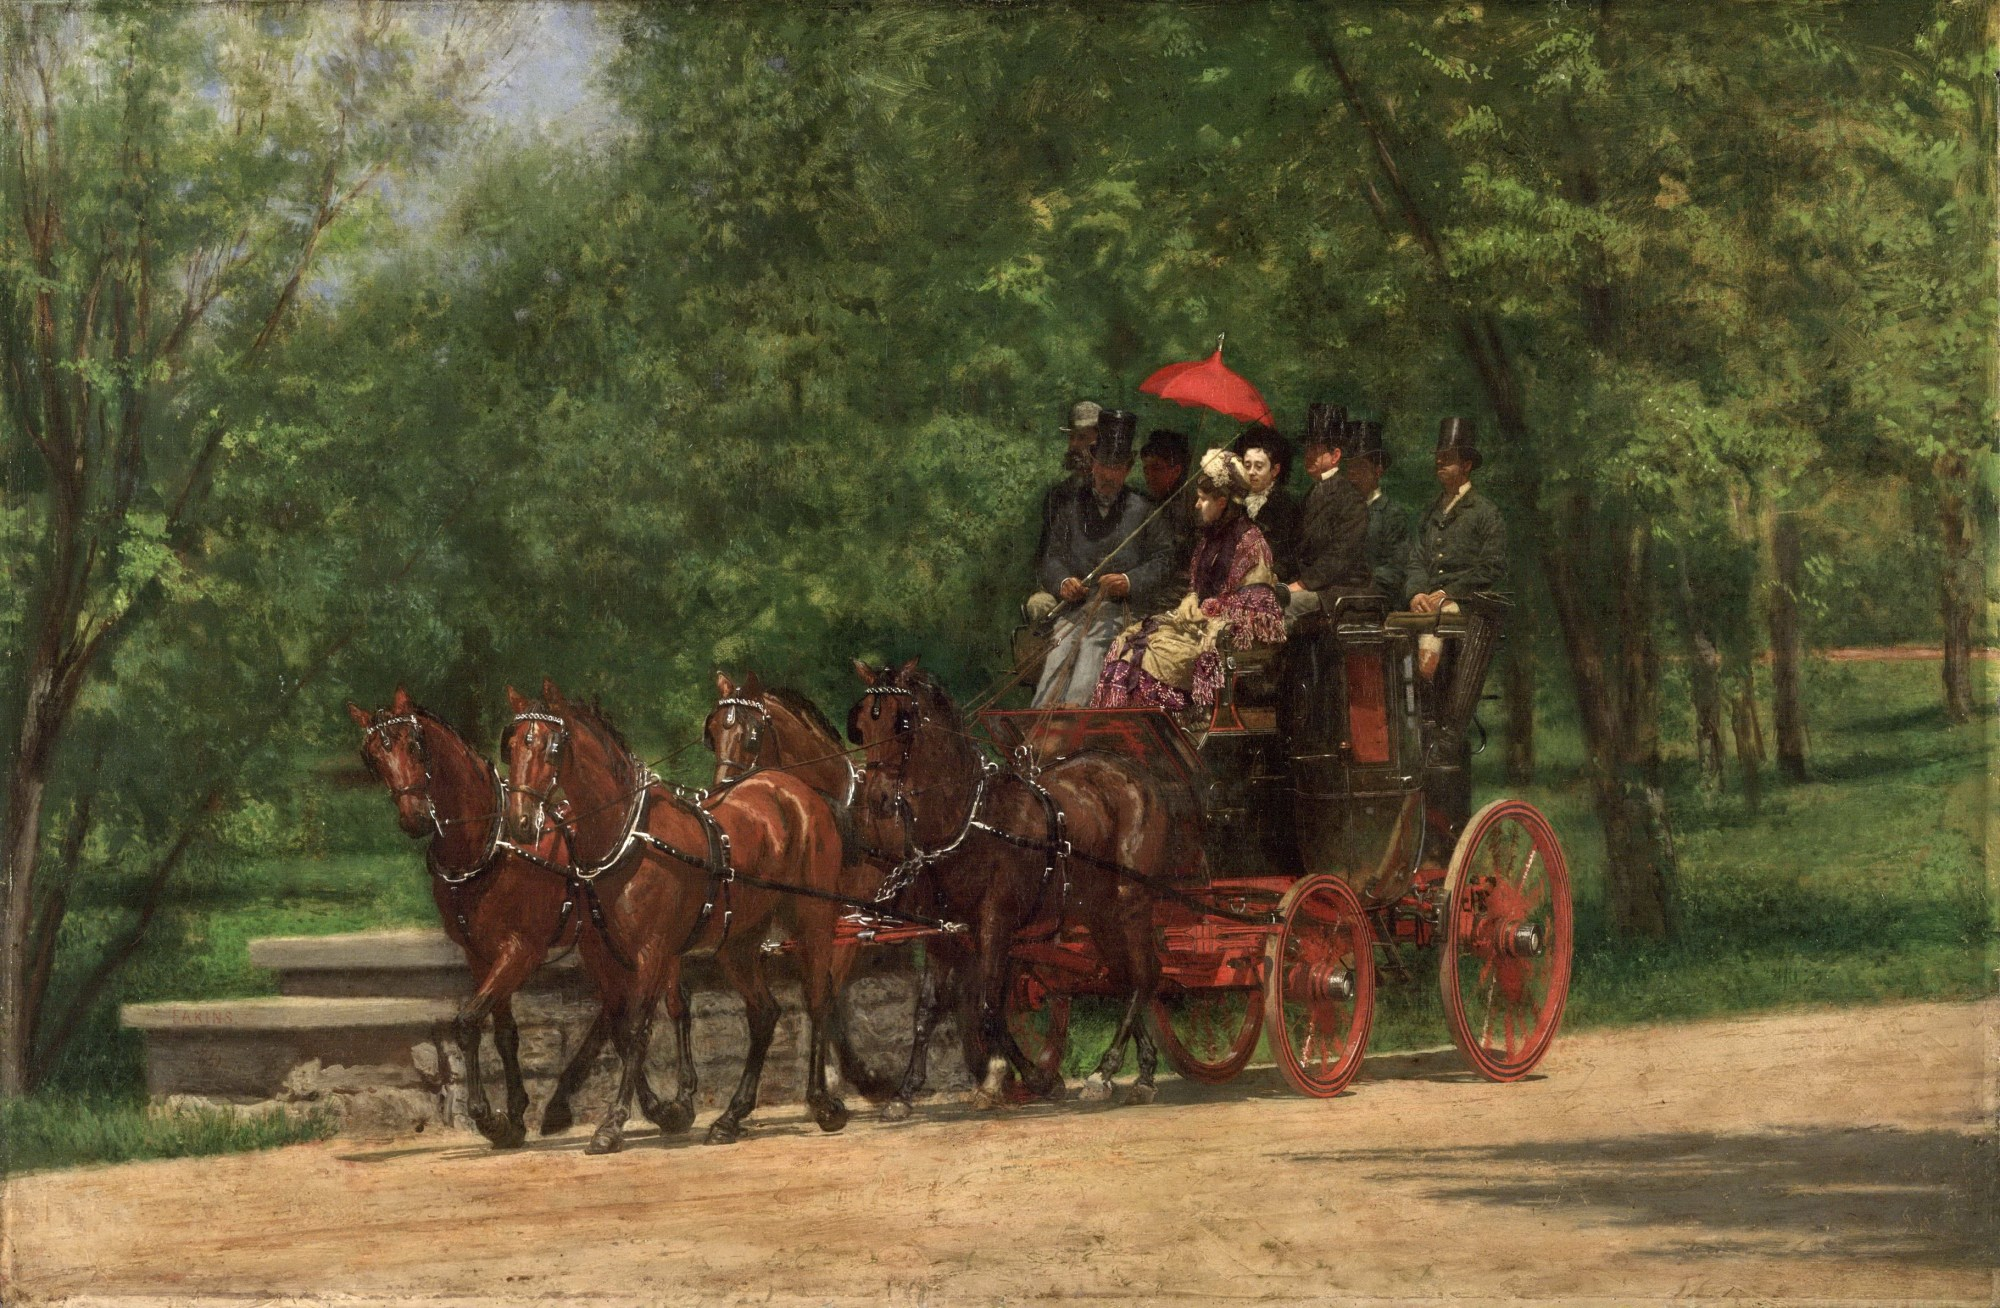 hight resolution of the fairman rogers four in hand 1879 80 by thomas eakins was the first painting to demonstrate precisely how horses move based on systematic photographic